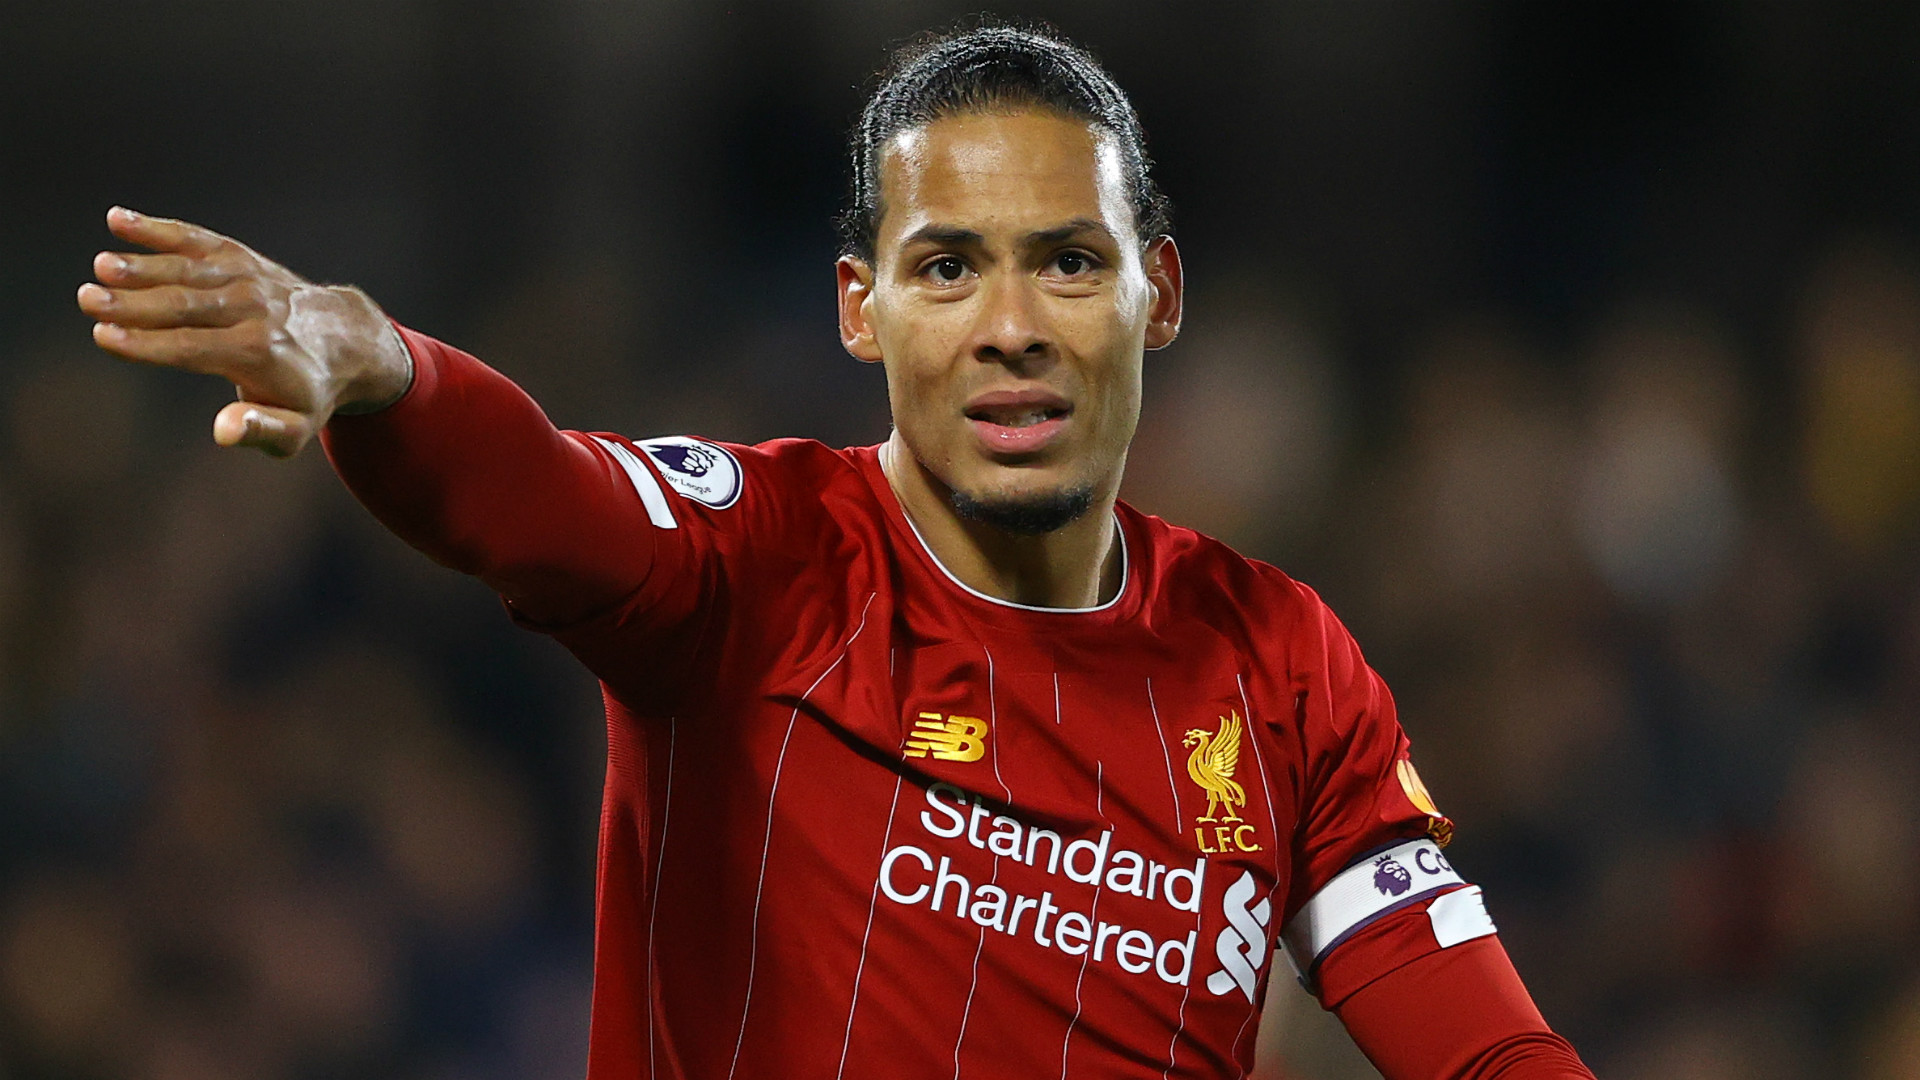 'I wasn't good enough at all' - Van Dijk reveals he was nearly axed by his first academy